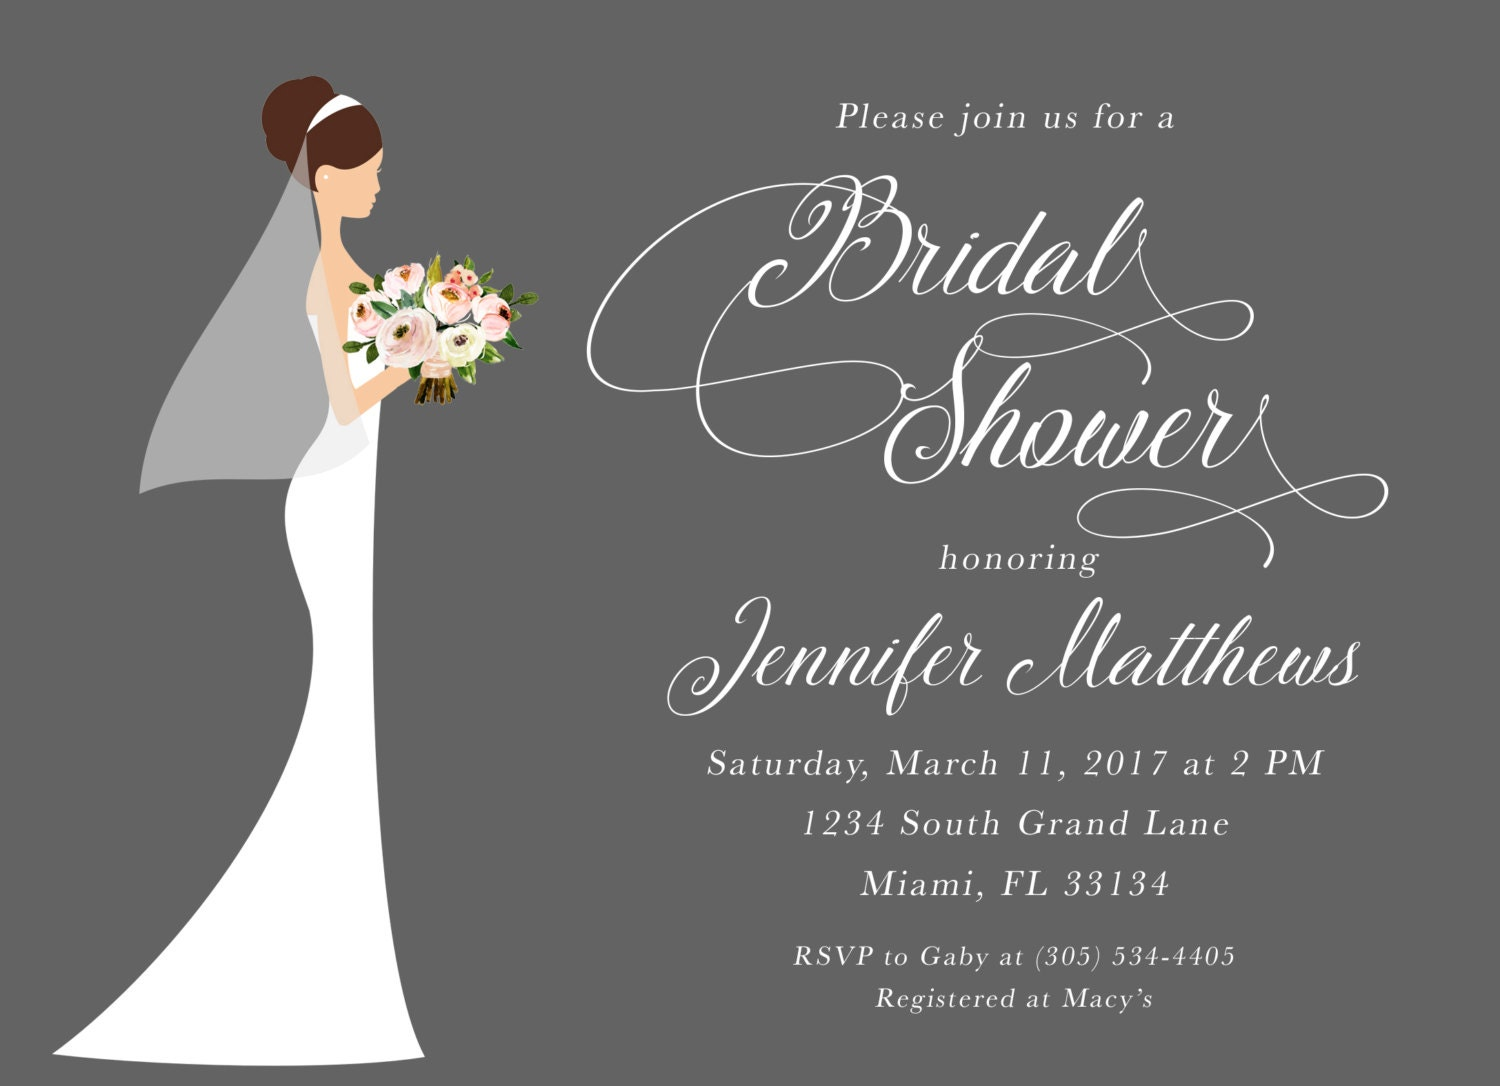 bridal shower invitation bride bridal shower invitation classic bridal shower wedding dress invitation printable invite